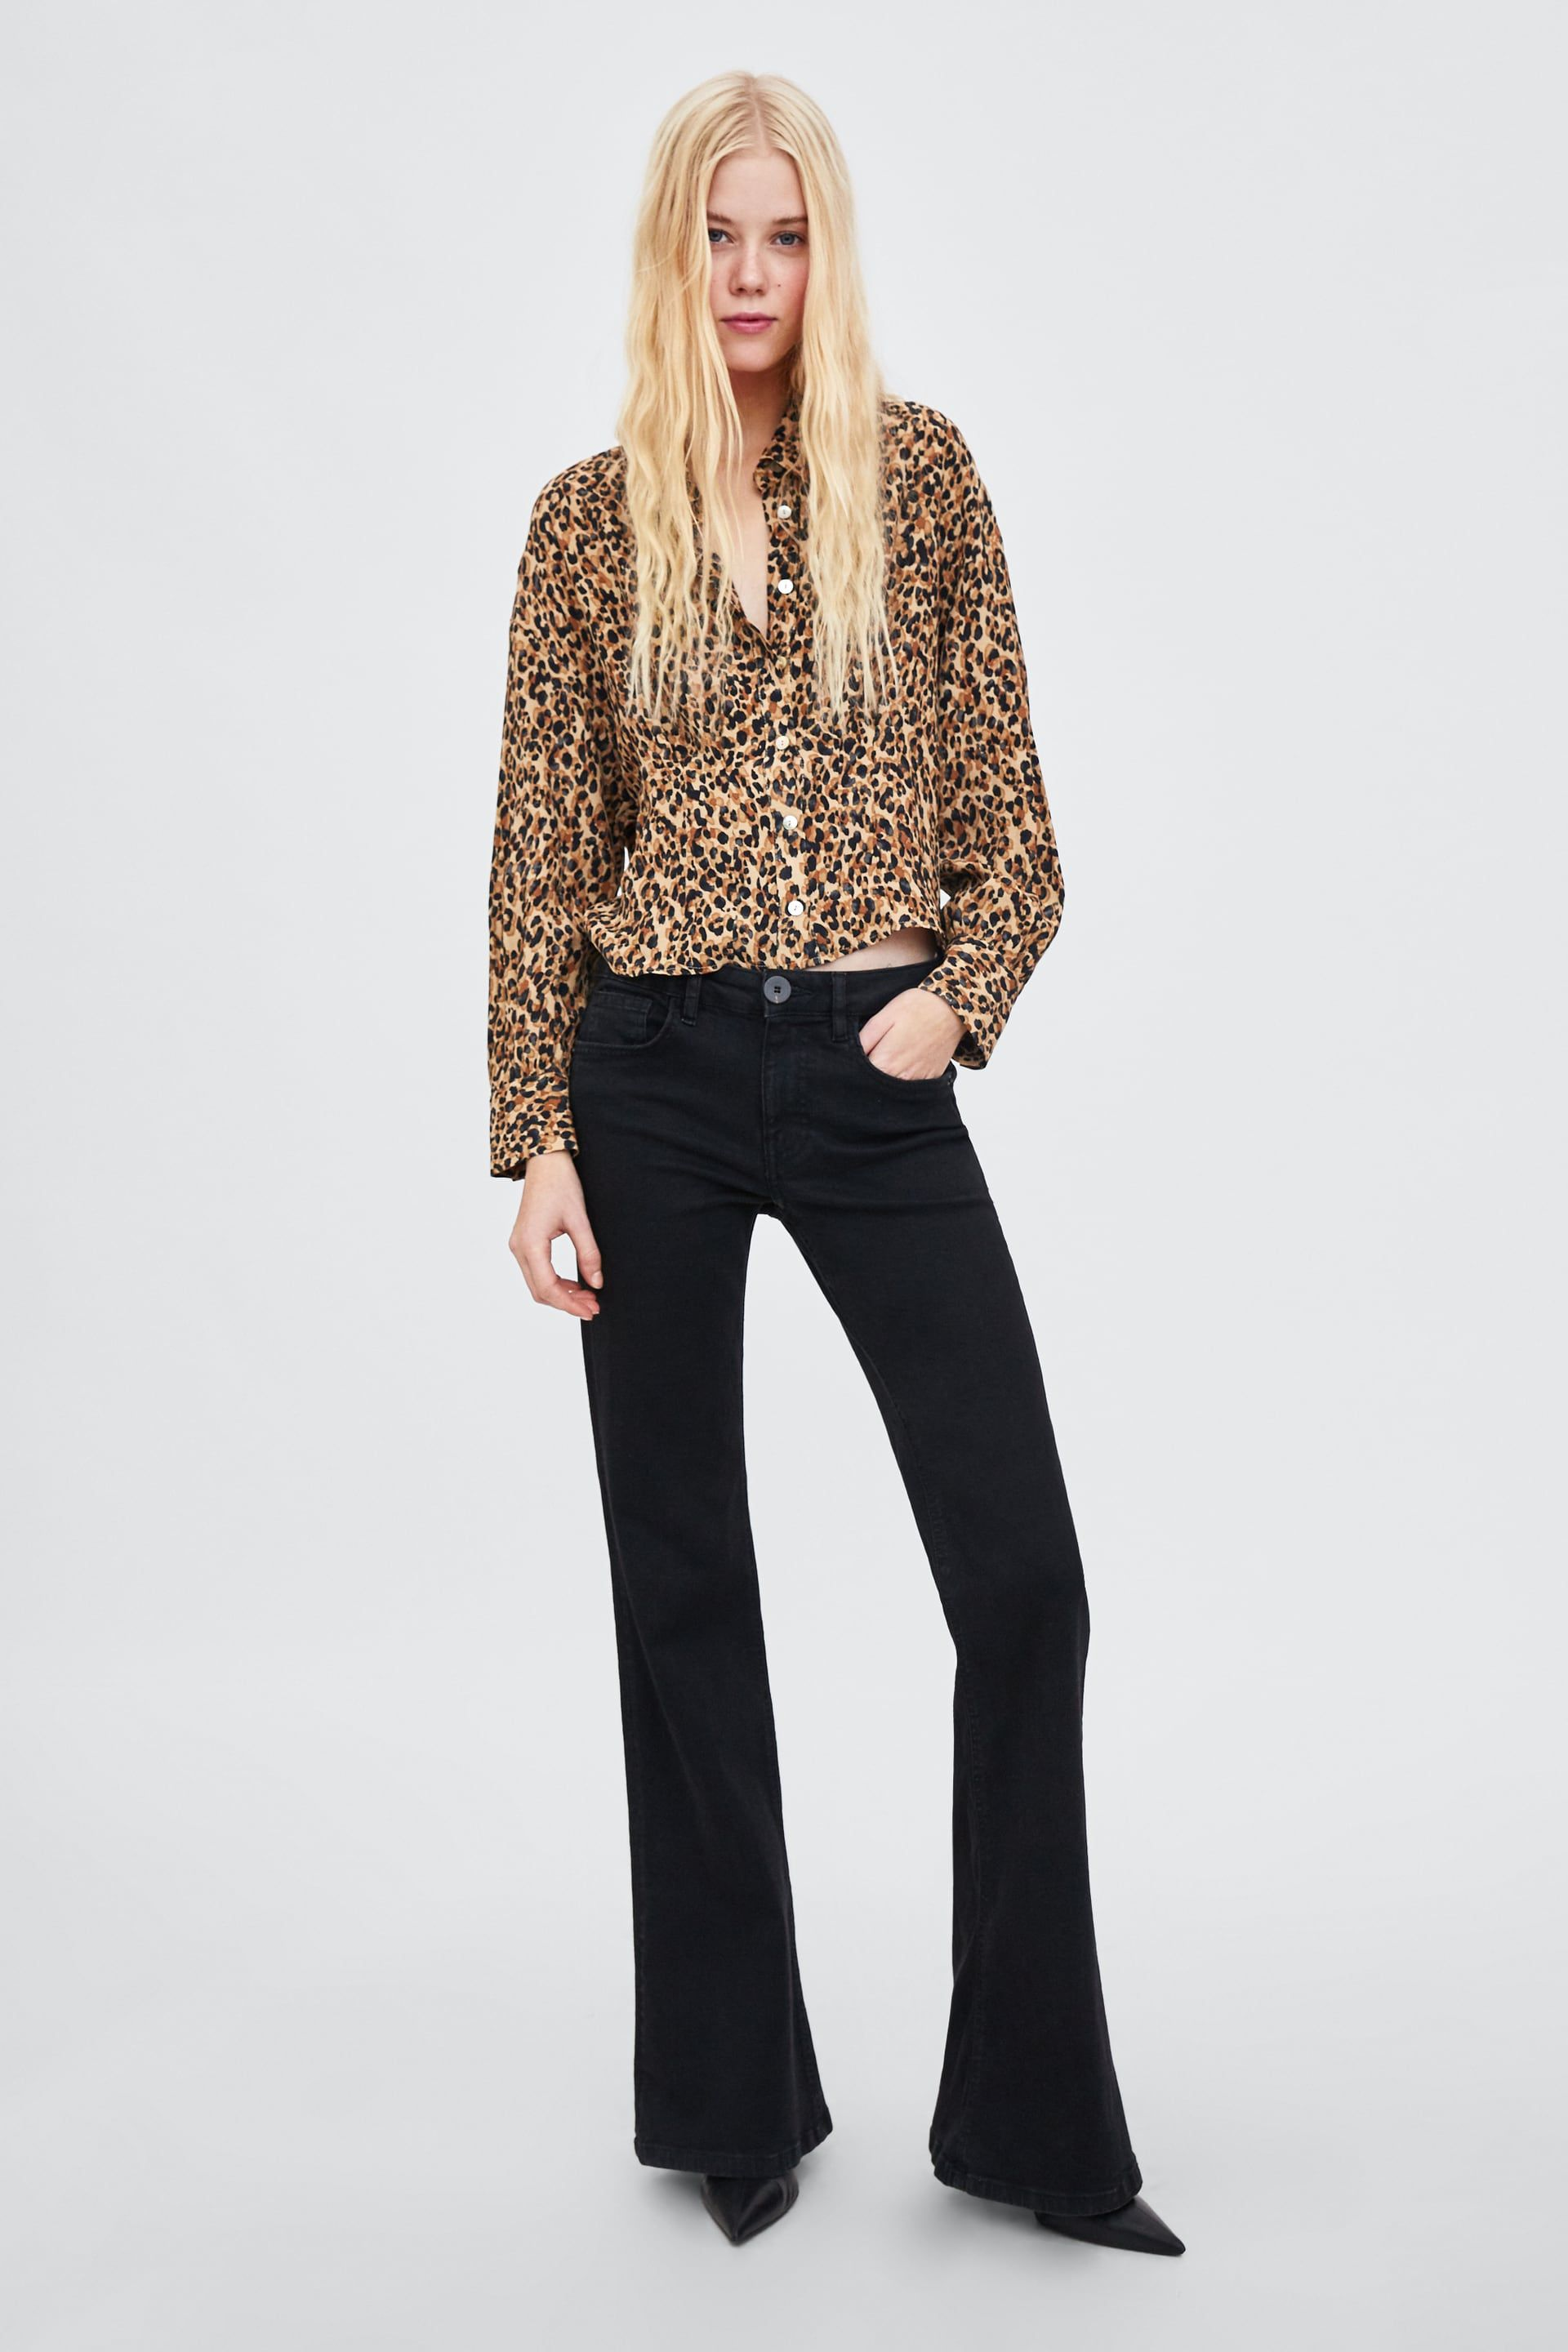 e2dd575846 Image 1 of CROPPED ANIMAL PRINT TOP from Zara   S T Y L E   Crop ...